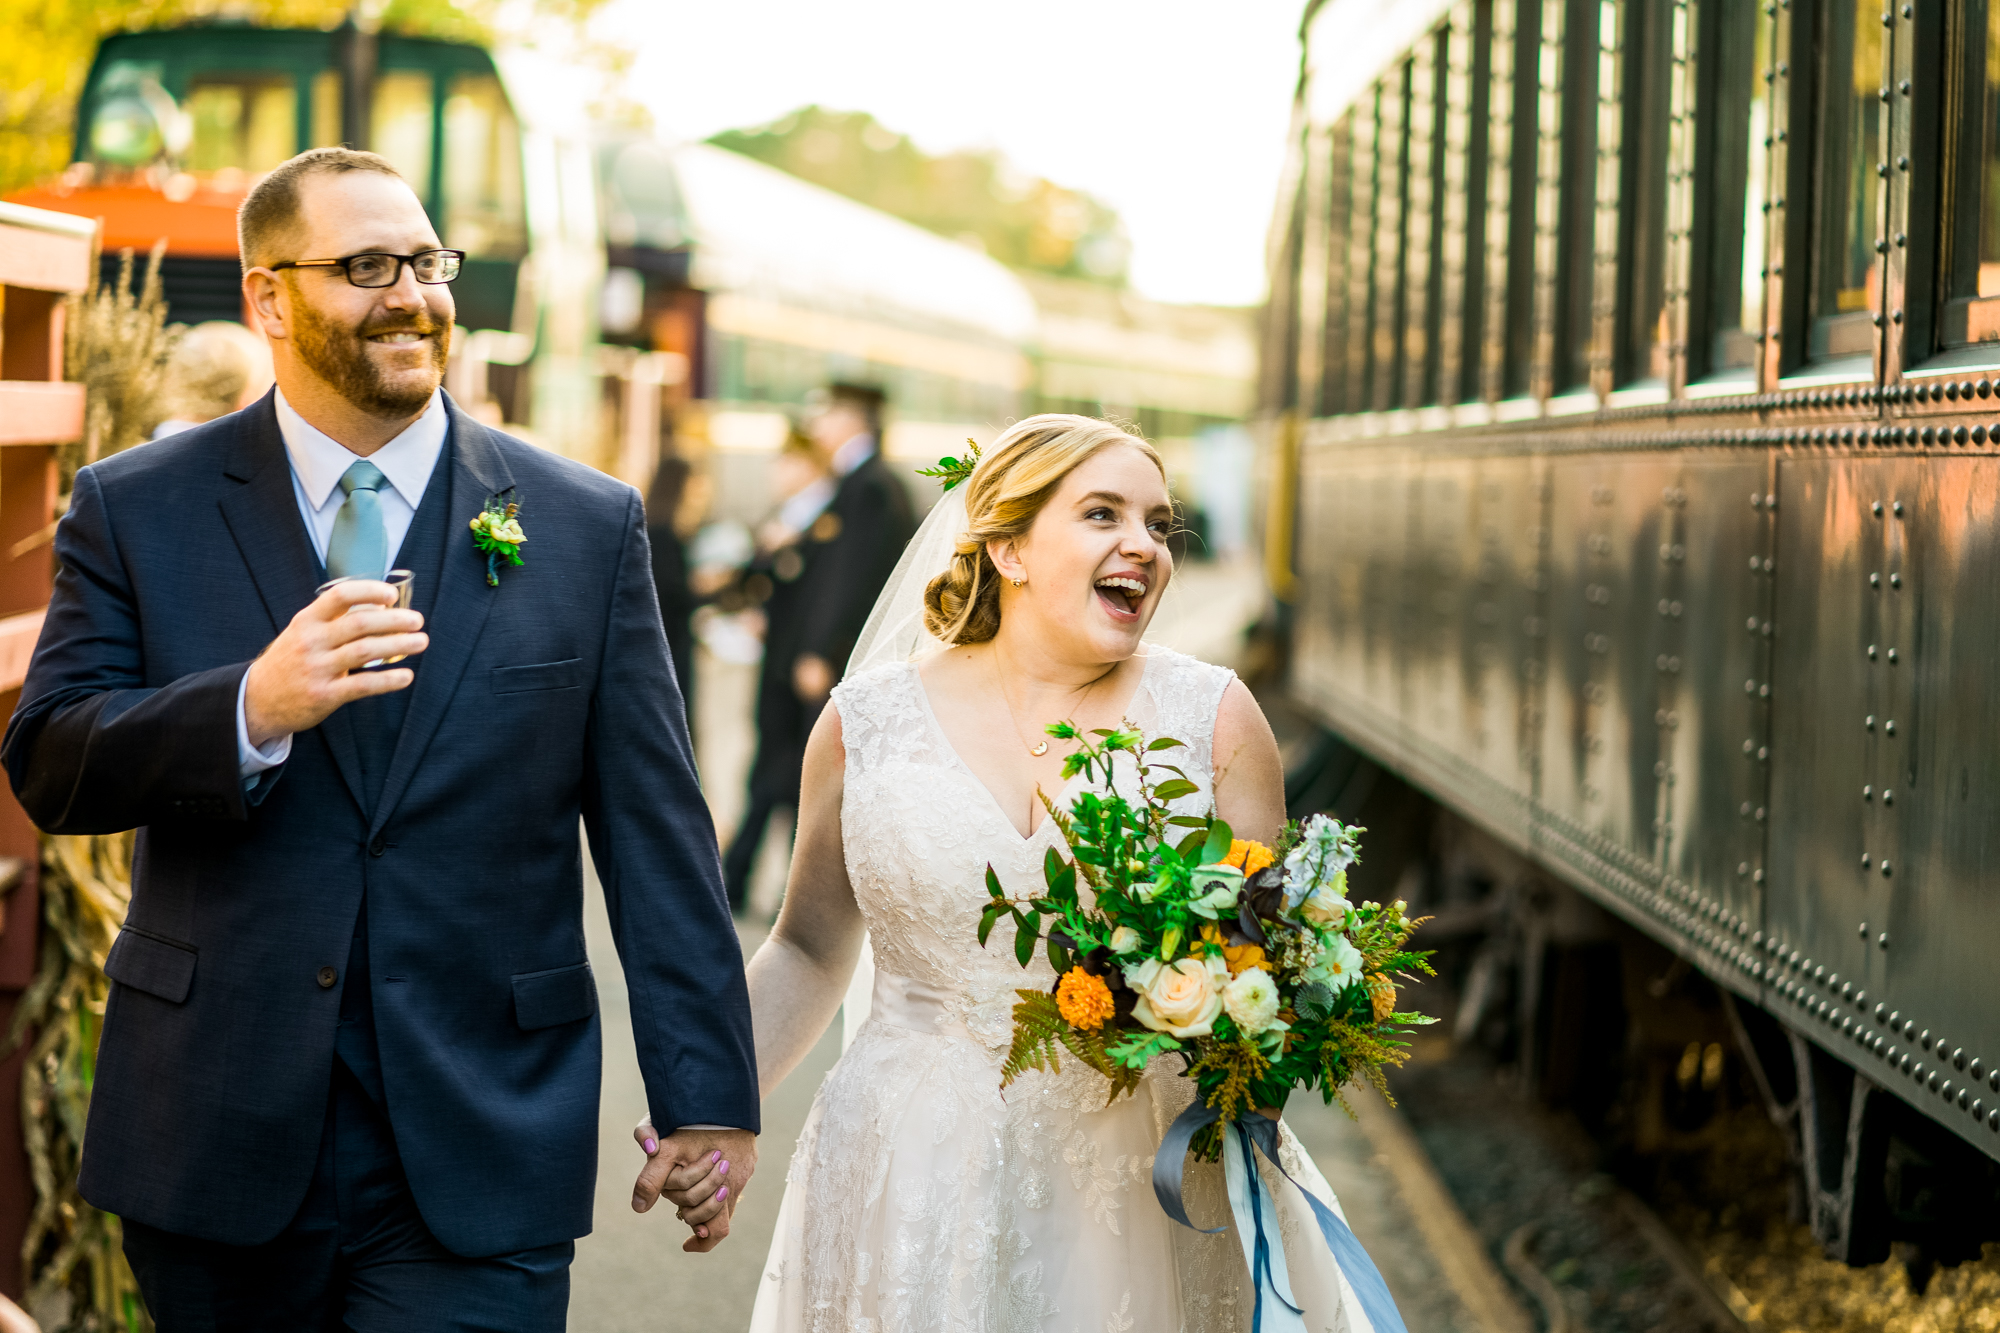 2018 Number 7 | Alex & Pat | Essex Steam Train & The Lace Factory  Sony a9 | 85 f1.8  As a young couple, Alex and Pat have been through alot. Perhaps, more hardship than most ever will. But here they are, on their wedding day, about to board a steam train, drinks and flowers in hand, with 200 of the most important people in their lives cheering them on. No couple of mine could understand more the importance of finding small moments of joy in life, and immersing yourself in them. It was an honor to photograph this wedding.